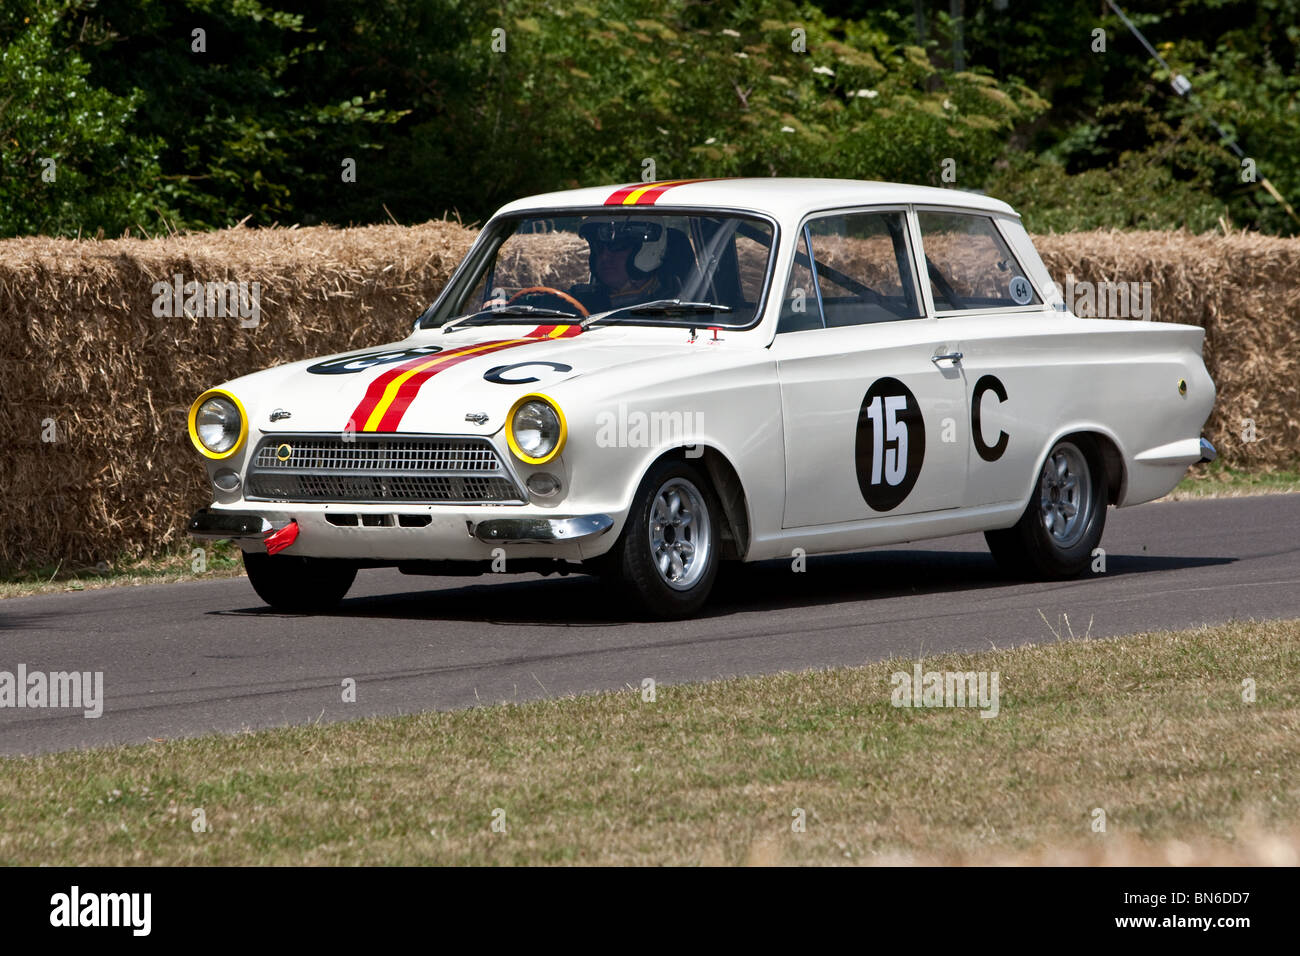 1964 ford lotus cortina mk1 bathurst at the festival of speed stock photo royalty free image. Black Bedroom Furniture Sets. Home Design Ideas